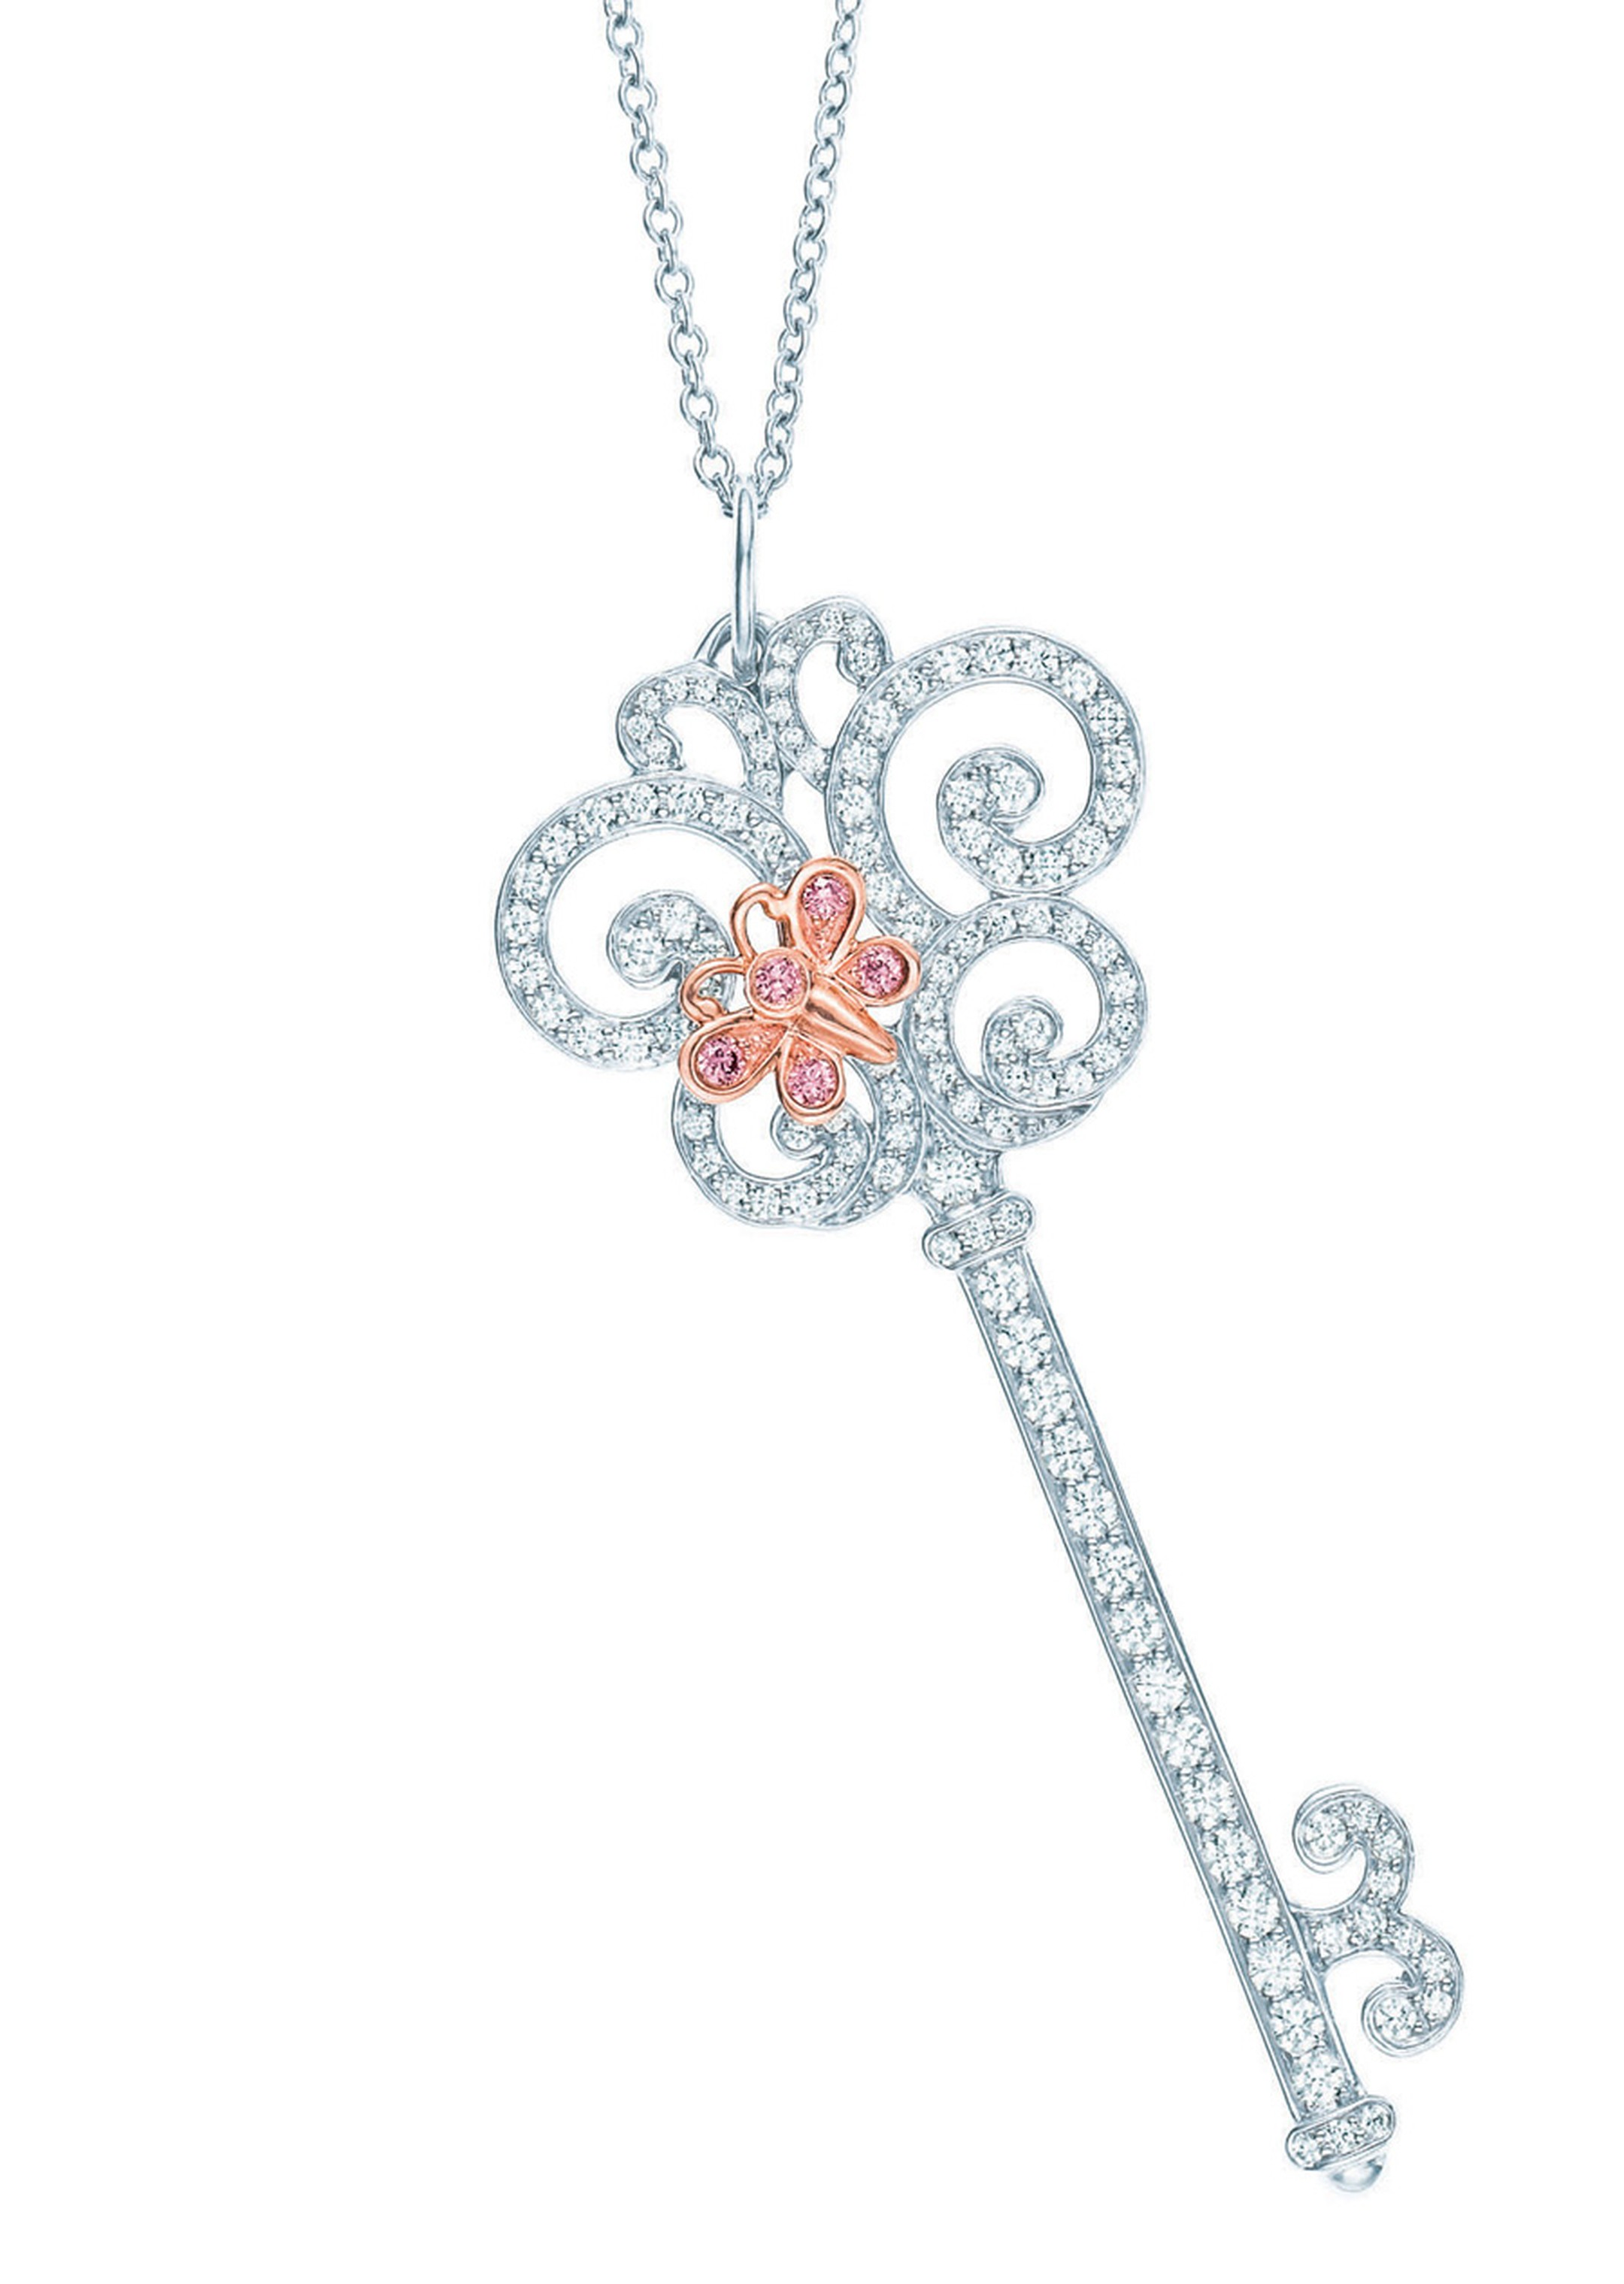 Tiffany-Enchant-key-in-platinum-and-18-karat-rose-gold